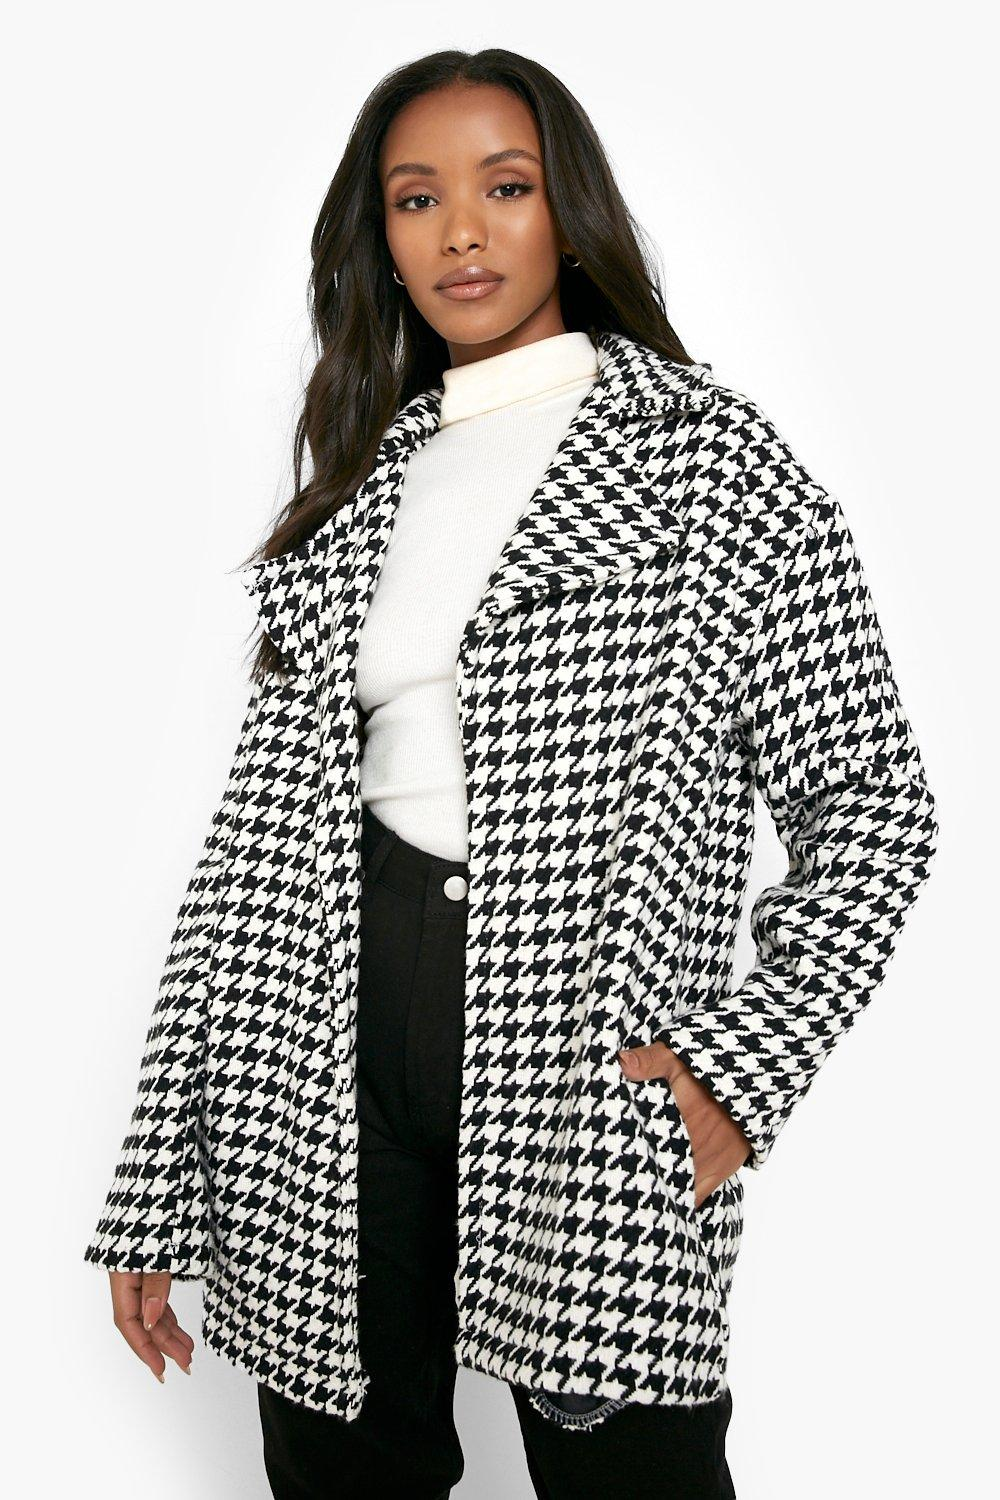 1950s Coats and Jackets History Womens Petite Dogtooth Wool Look Car Coat - Black - 12 $90.00 AT vintagedancer.com